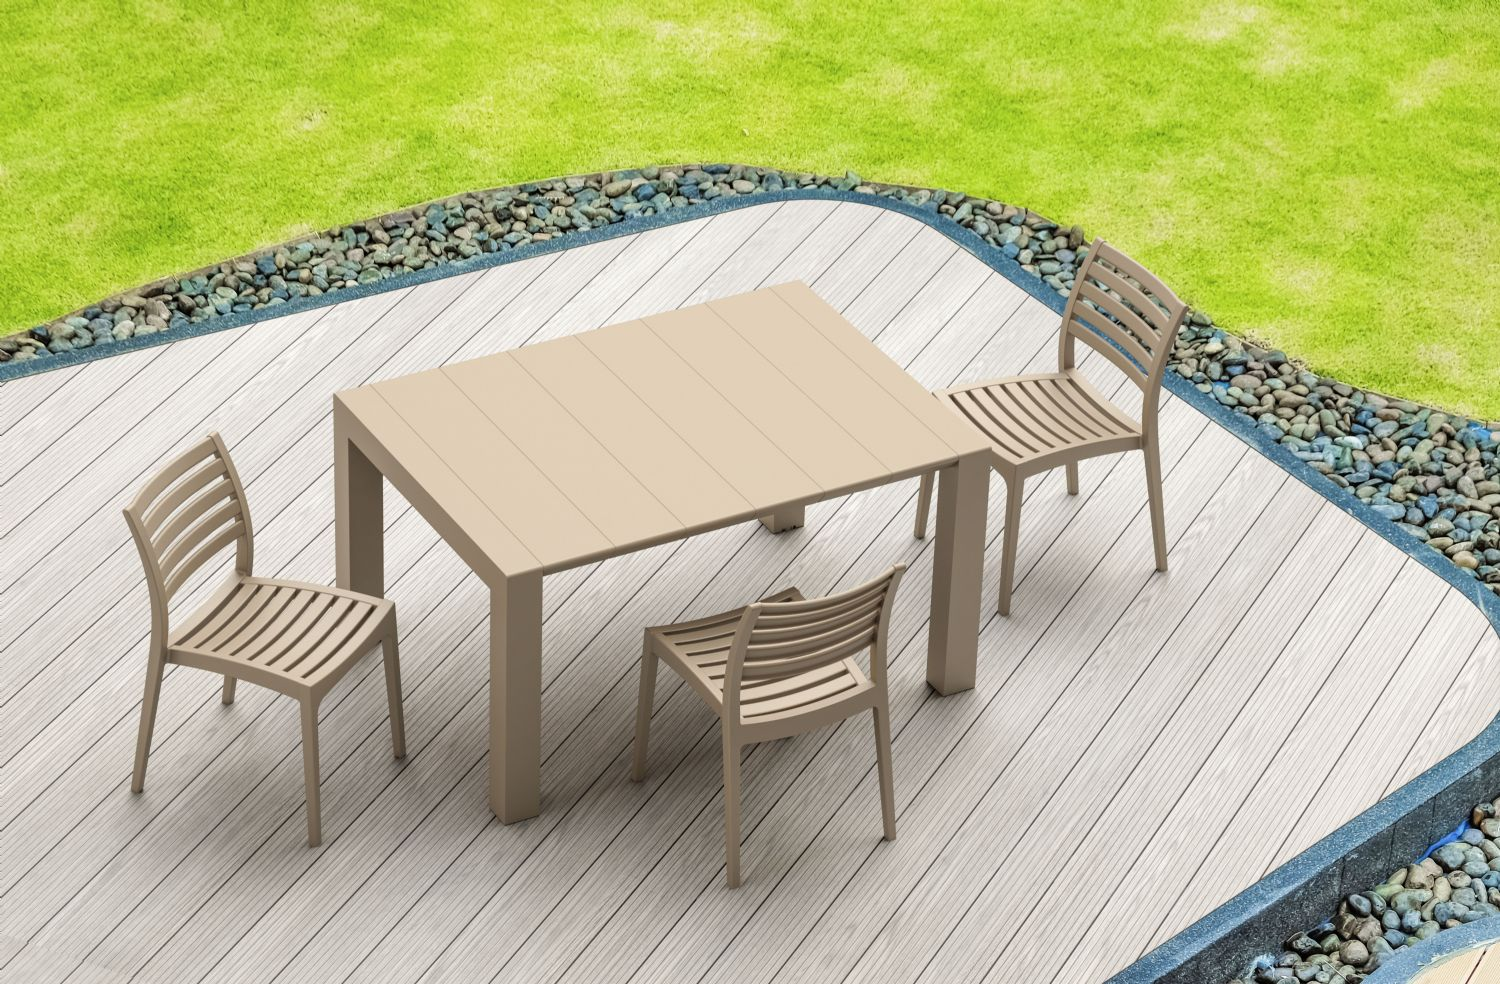 Ares Resin Outdoor Dining Chair Cafe Latte ISP009-TEA - 14